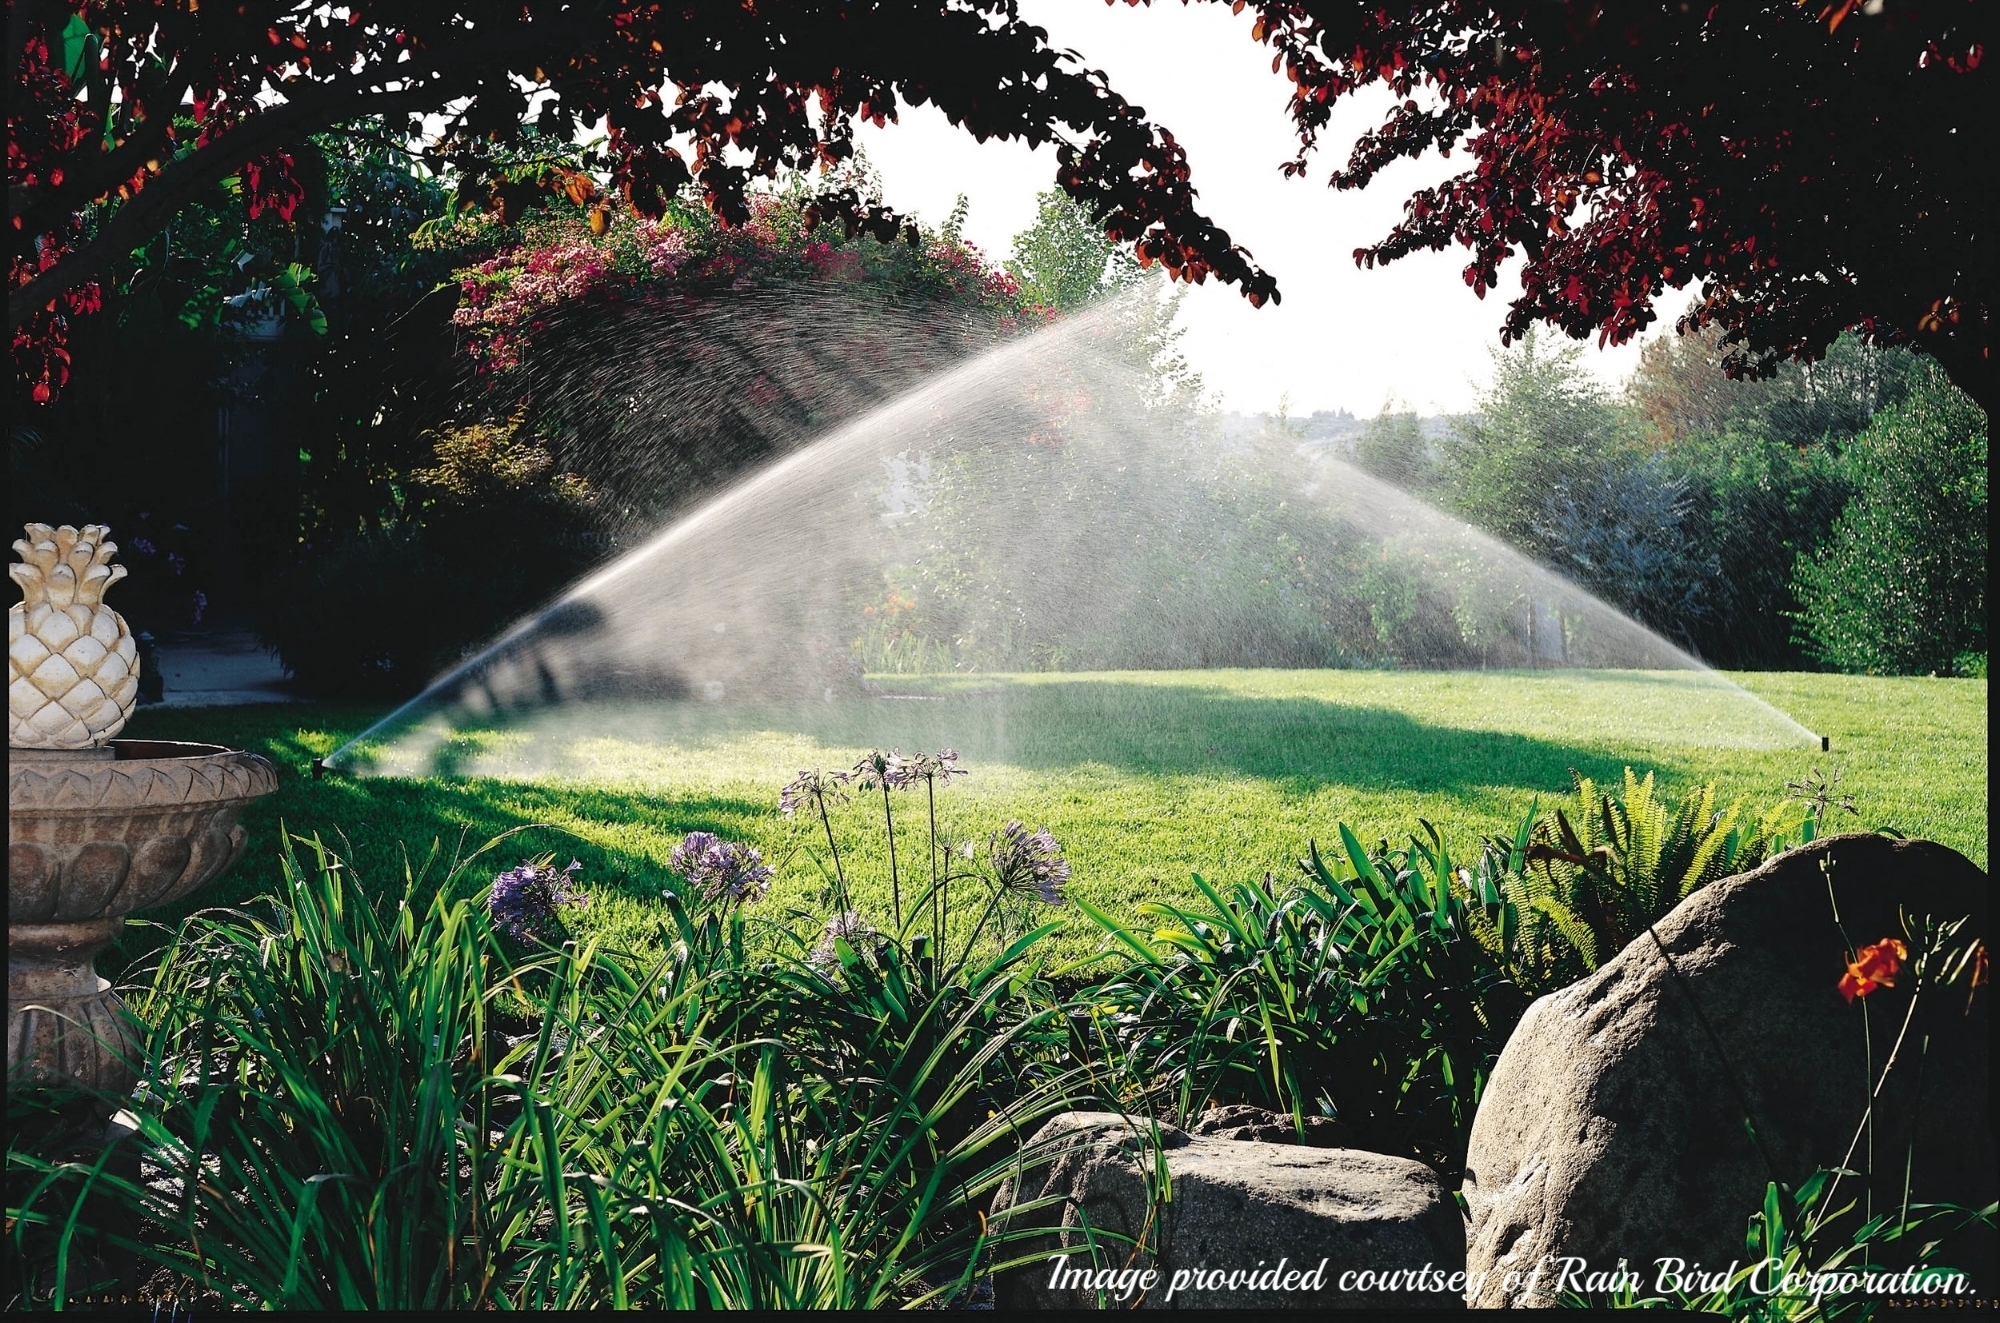 Sprinkler Repair & Installation - Licensed Irrigator by Texas Commission on Environmental Quality (TCEQ). Full installation, sprinkler repair and system upgrades.